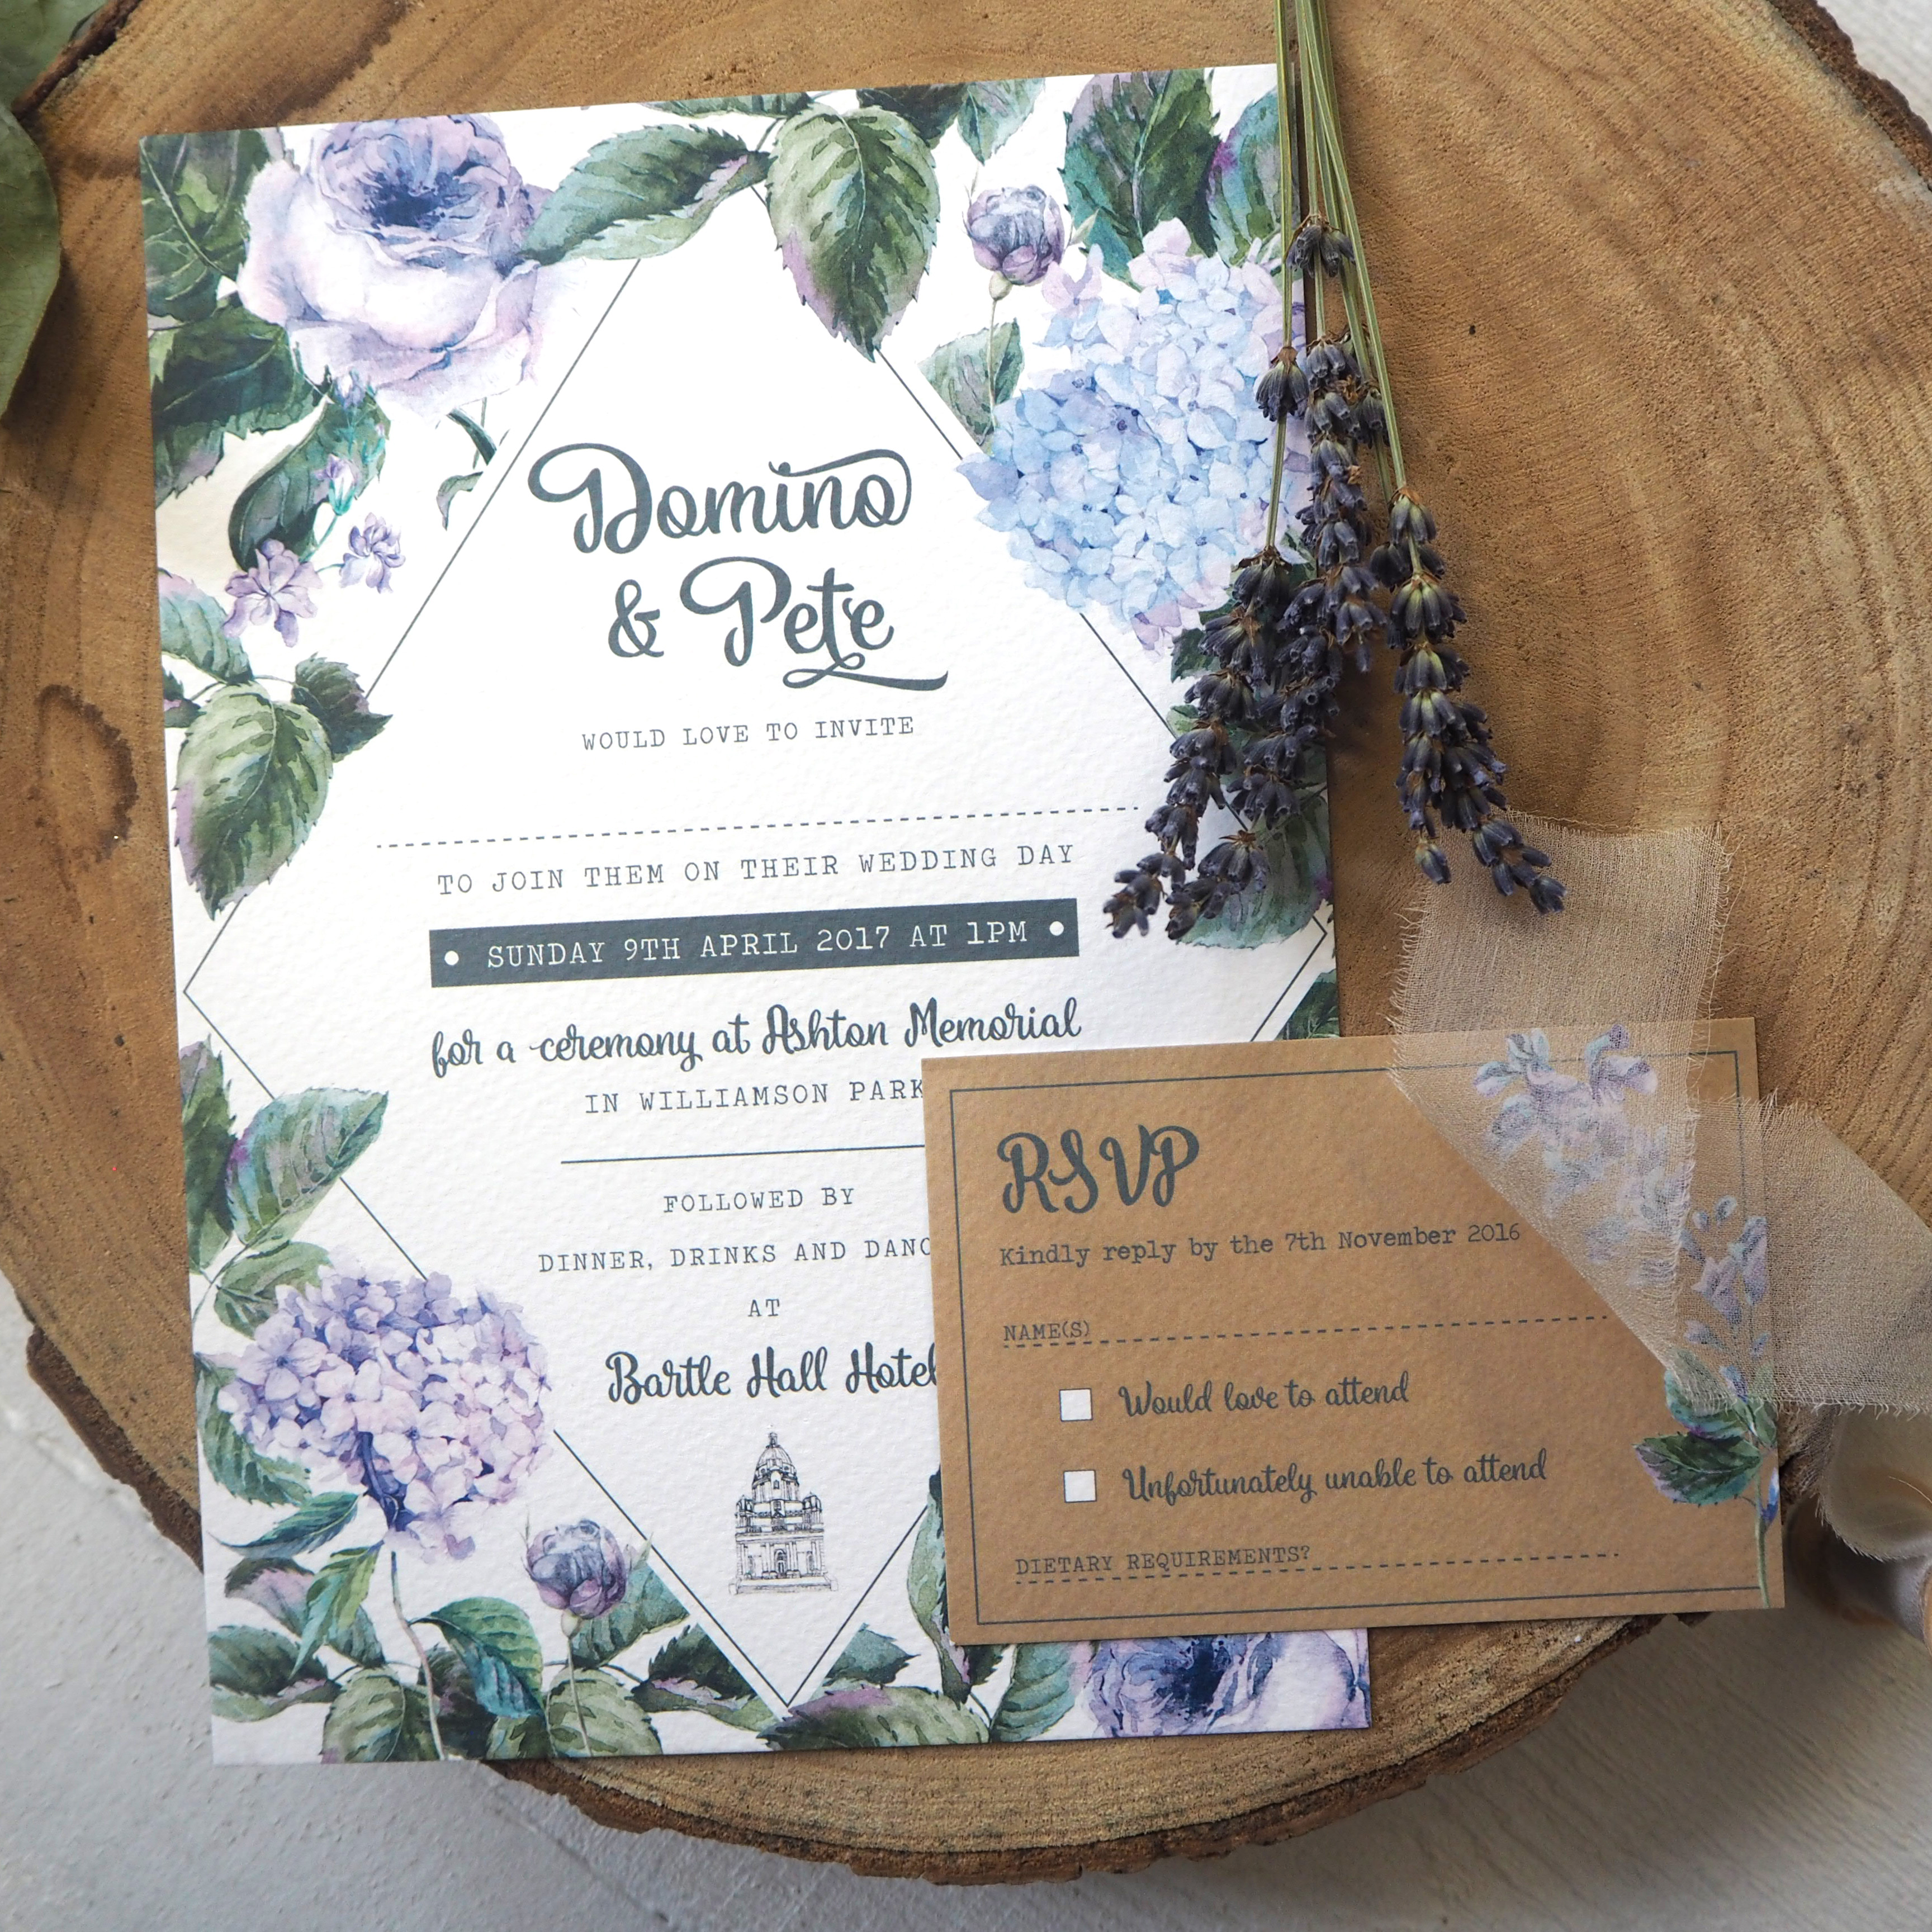 Wild Roses Wedding Invitations - beautiful wedding invite by Rodo Creative